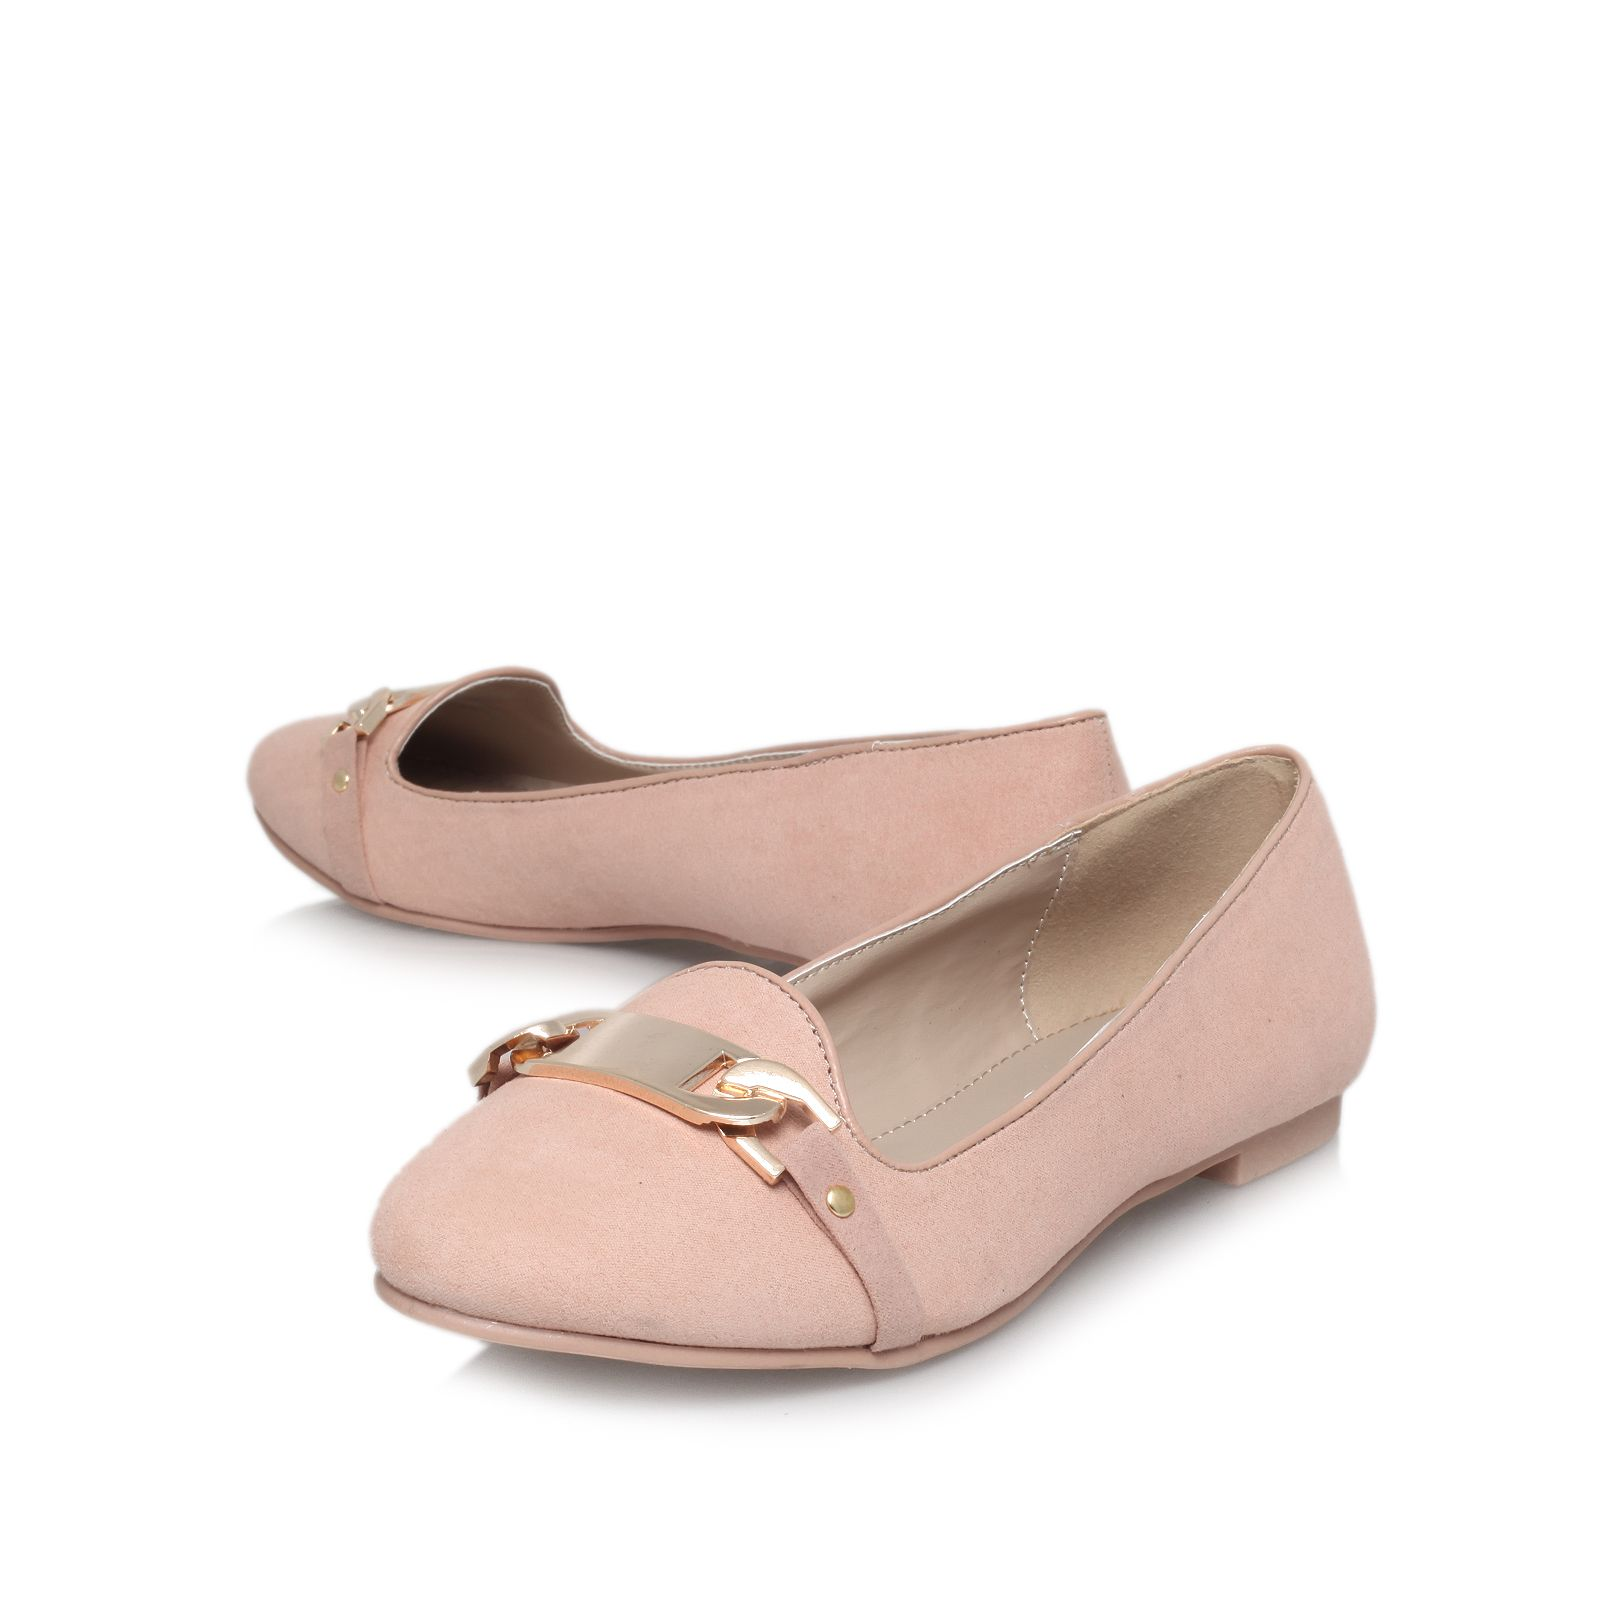 Lull flat court shoes